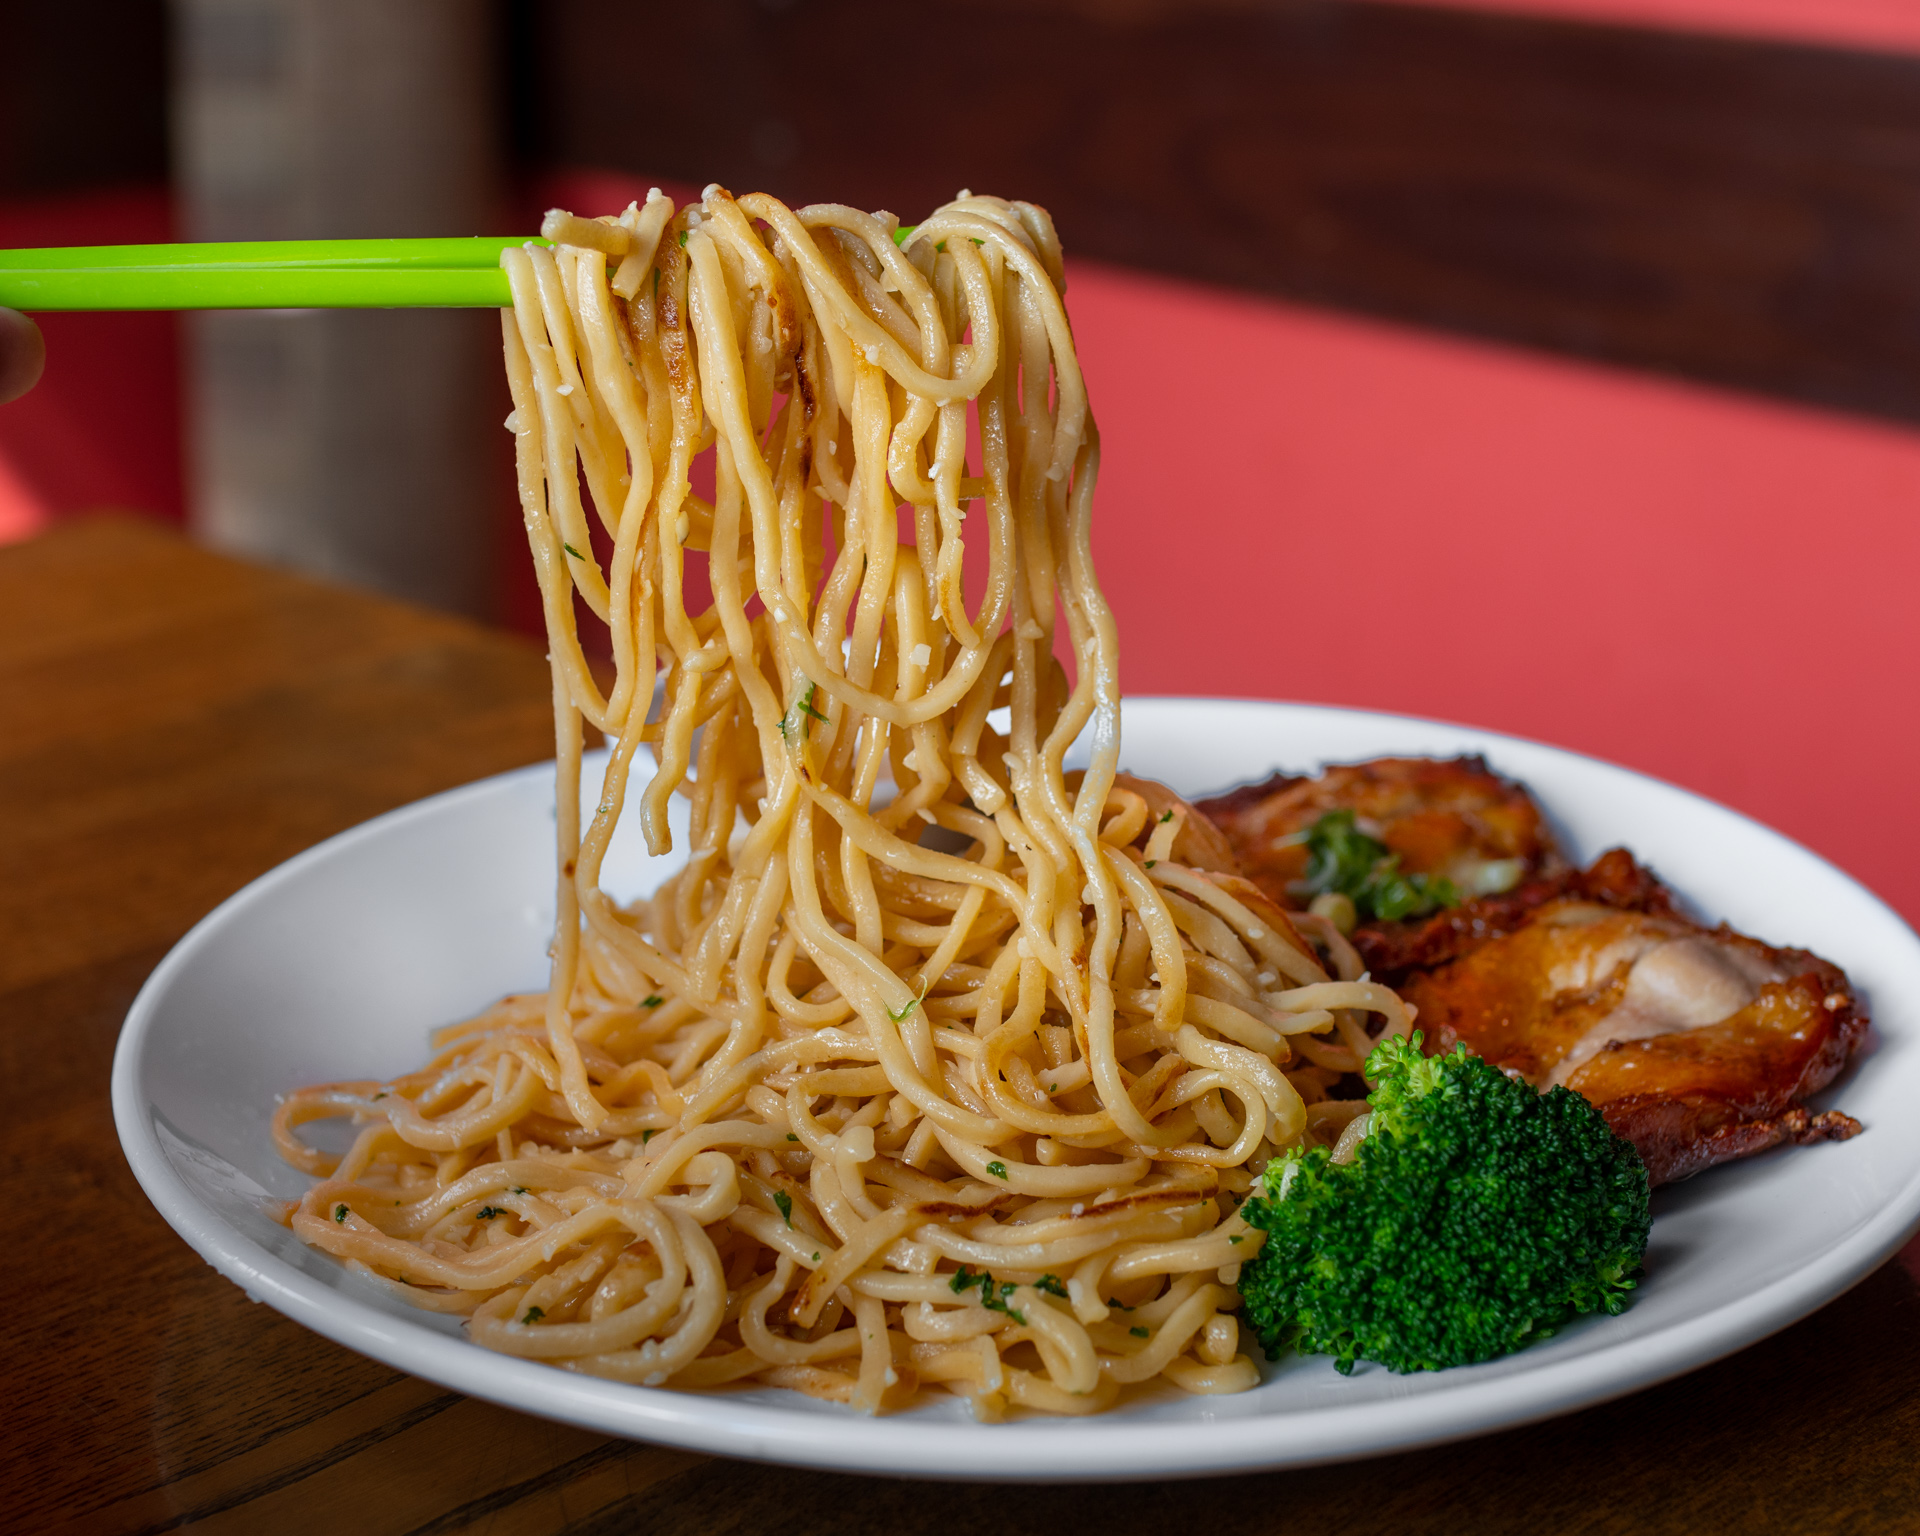 Perilla's Five Spice Chicken Garlic Noodles